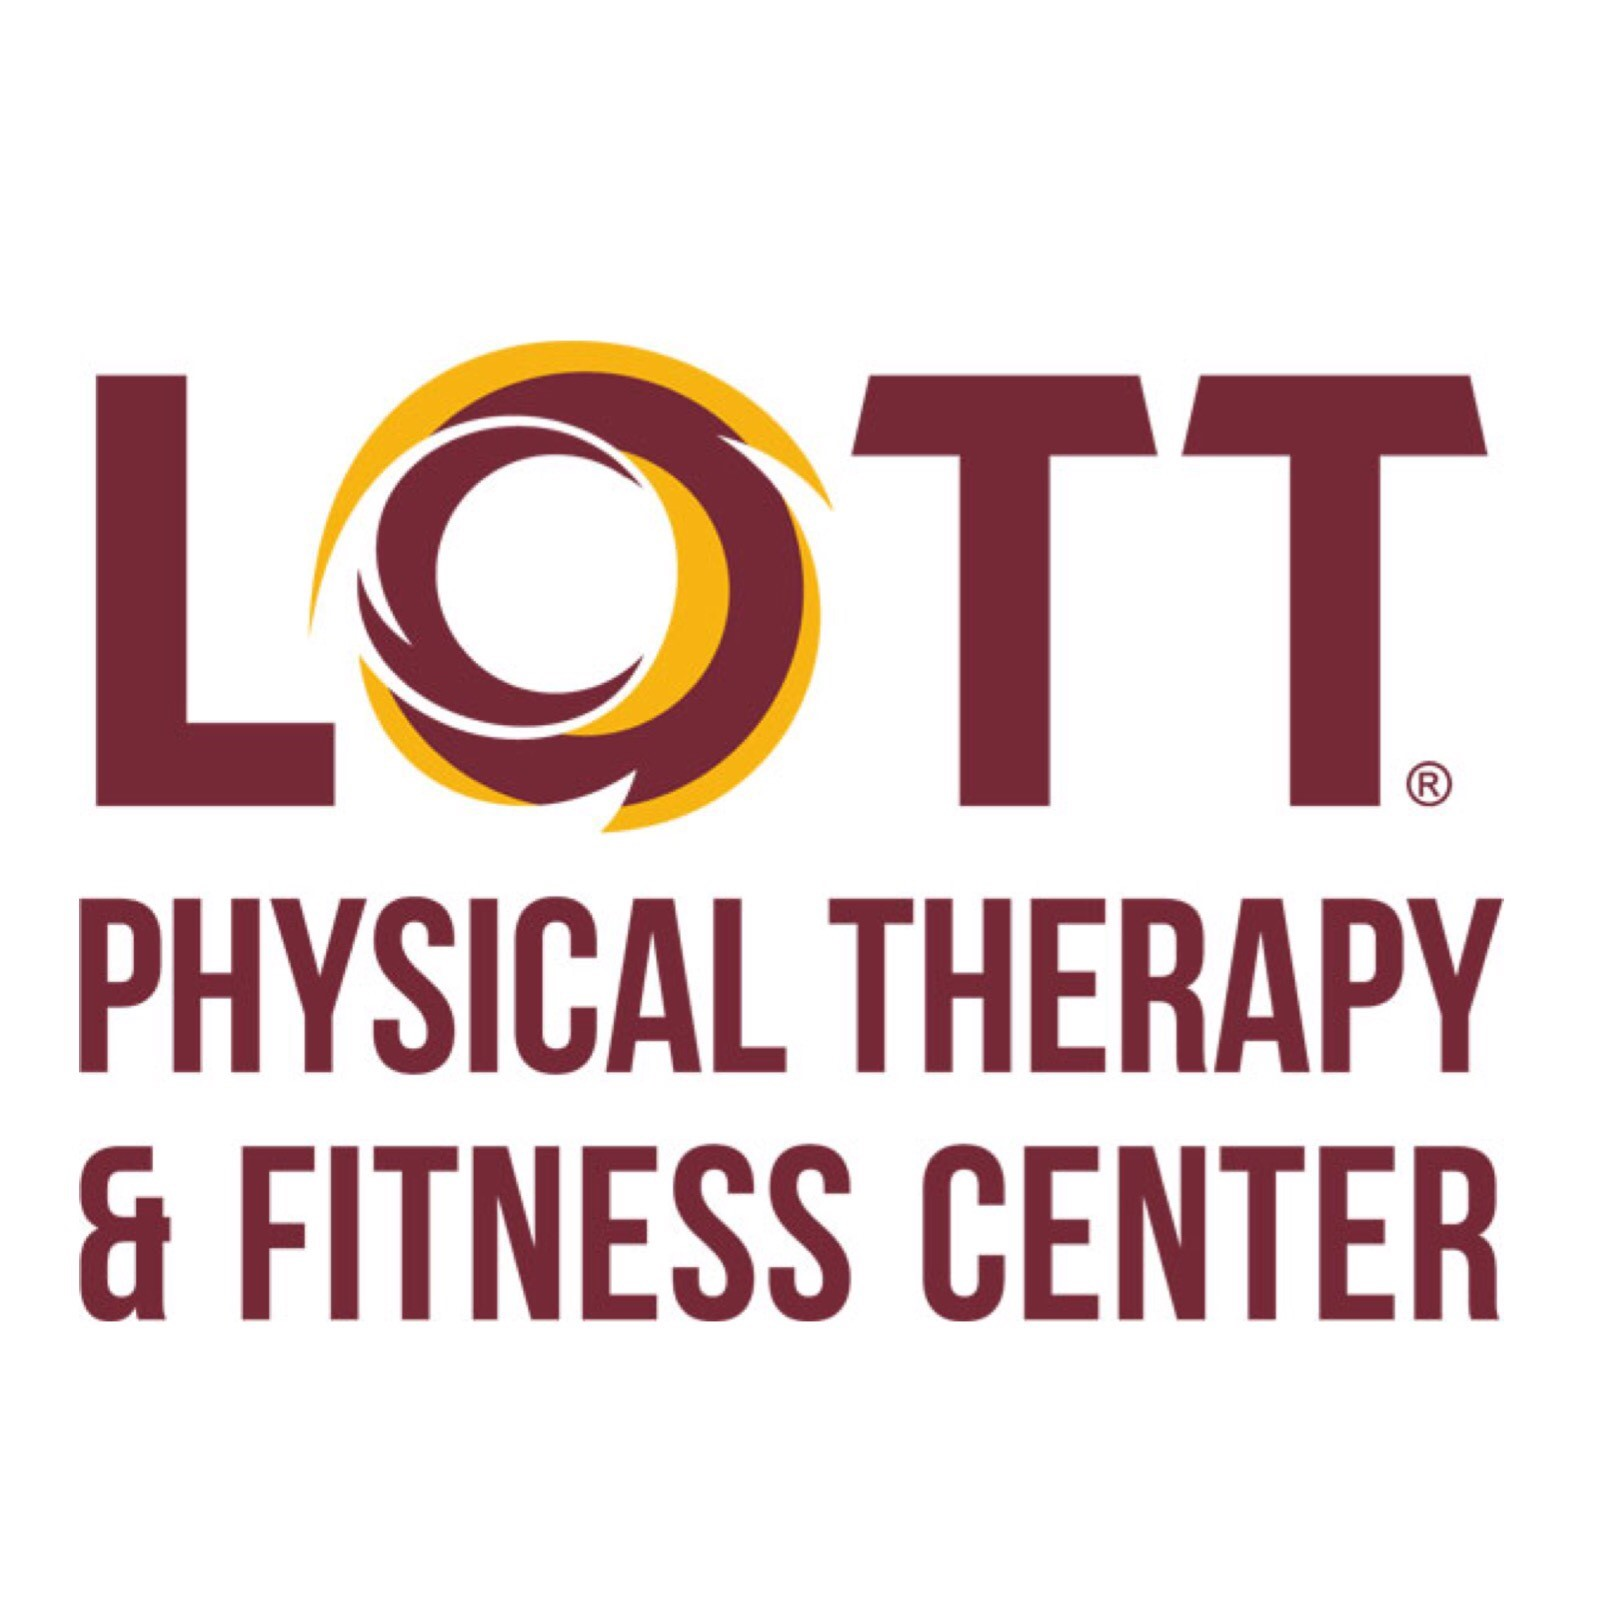 Lott Physical Therapy & Fitness Center